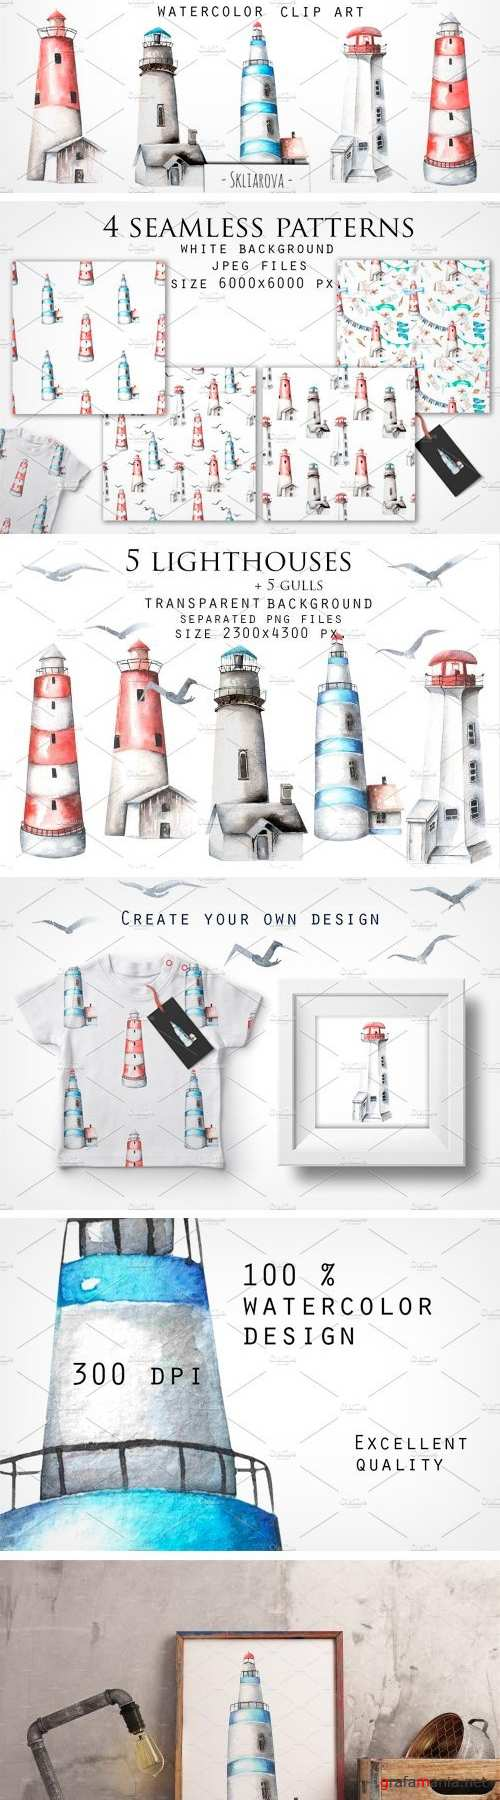 Lighthouses. Watercolor CLip Art. - 2165152